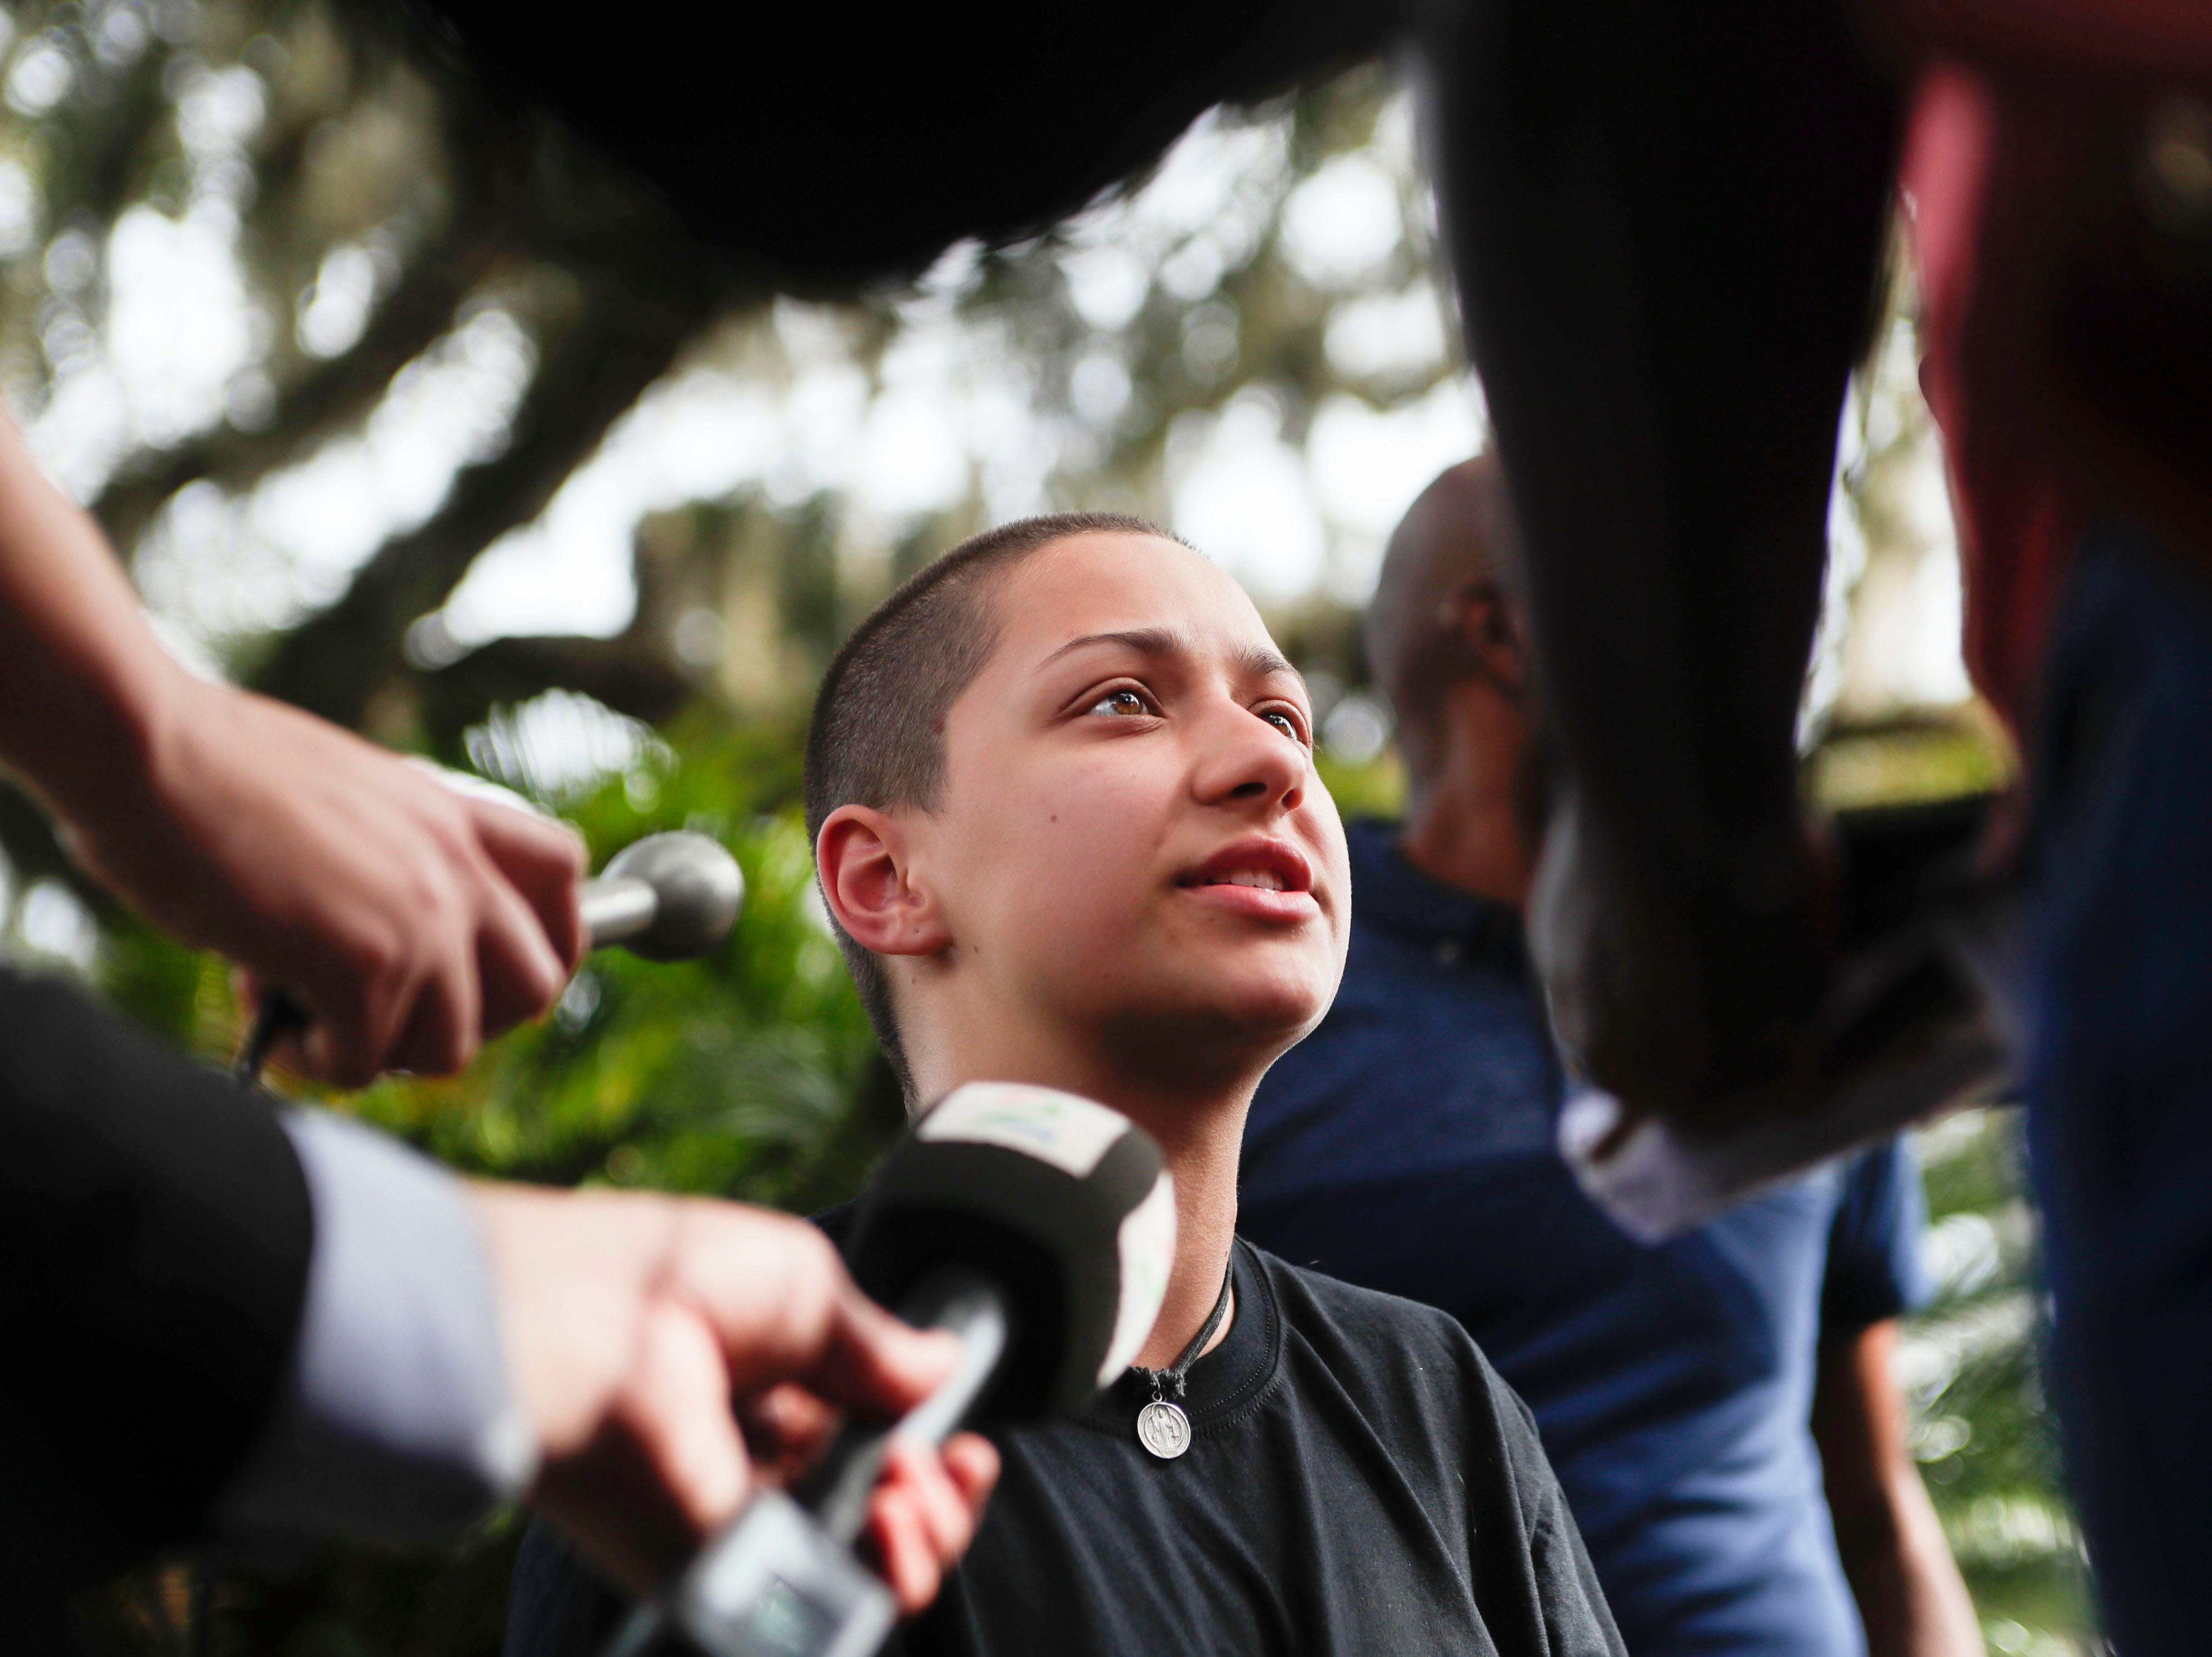 Parkland shooting survivor and activist Emma González speaks to the press after holding a press conference with the March for Our Lives movement on the steps of the Florida Historic State Capitol in Tallahassee, Fla. Monday, Nov. 5, 2018 ahead of the 2018 midterm elections Tuesday.